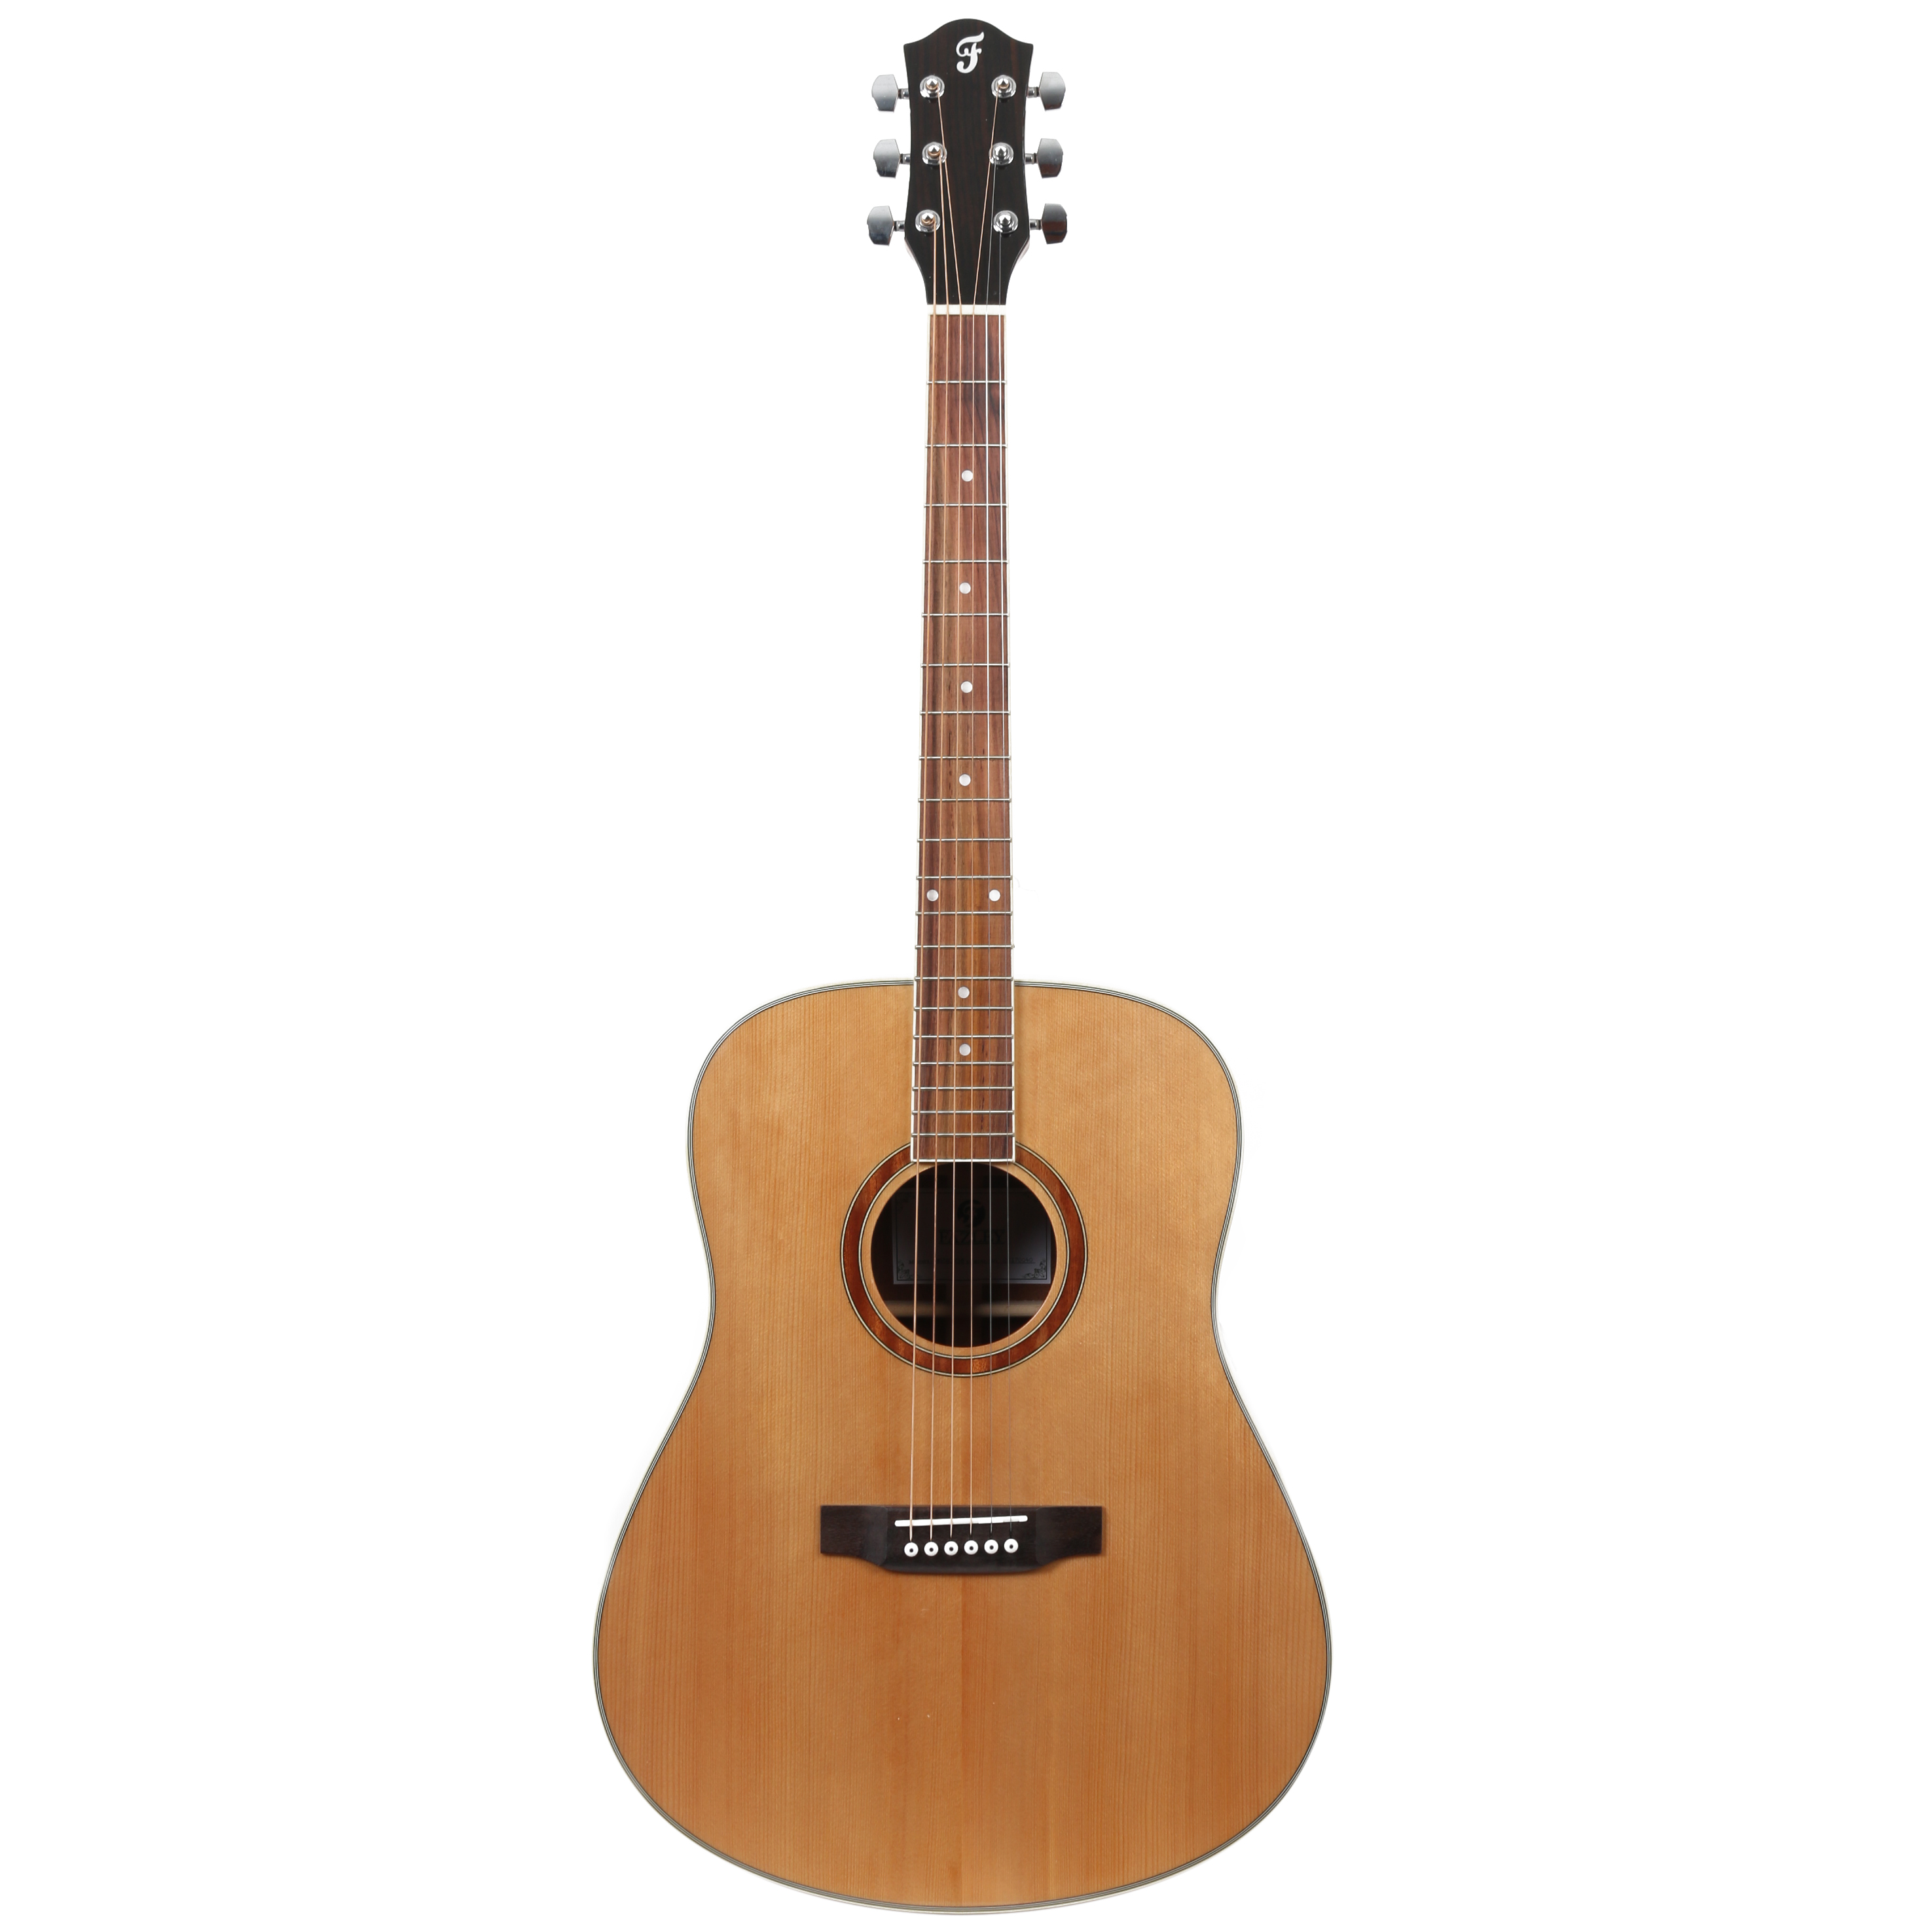 Fazley WST400N solid top steel string acoustic guitar, natural